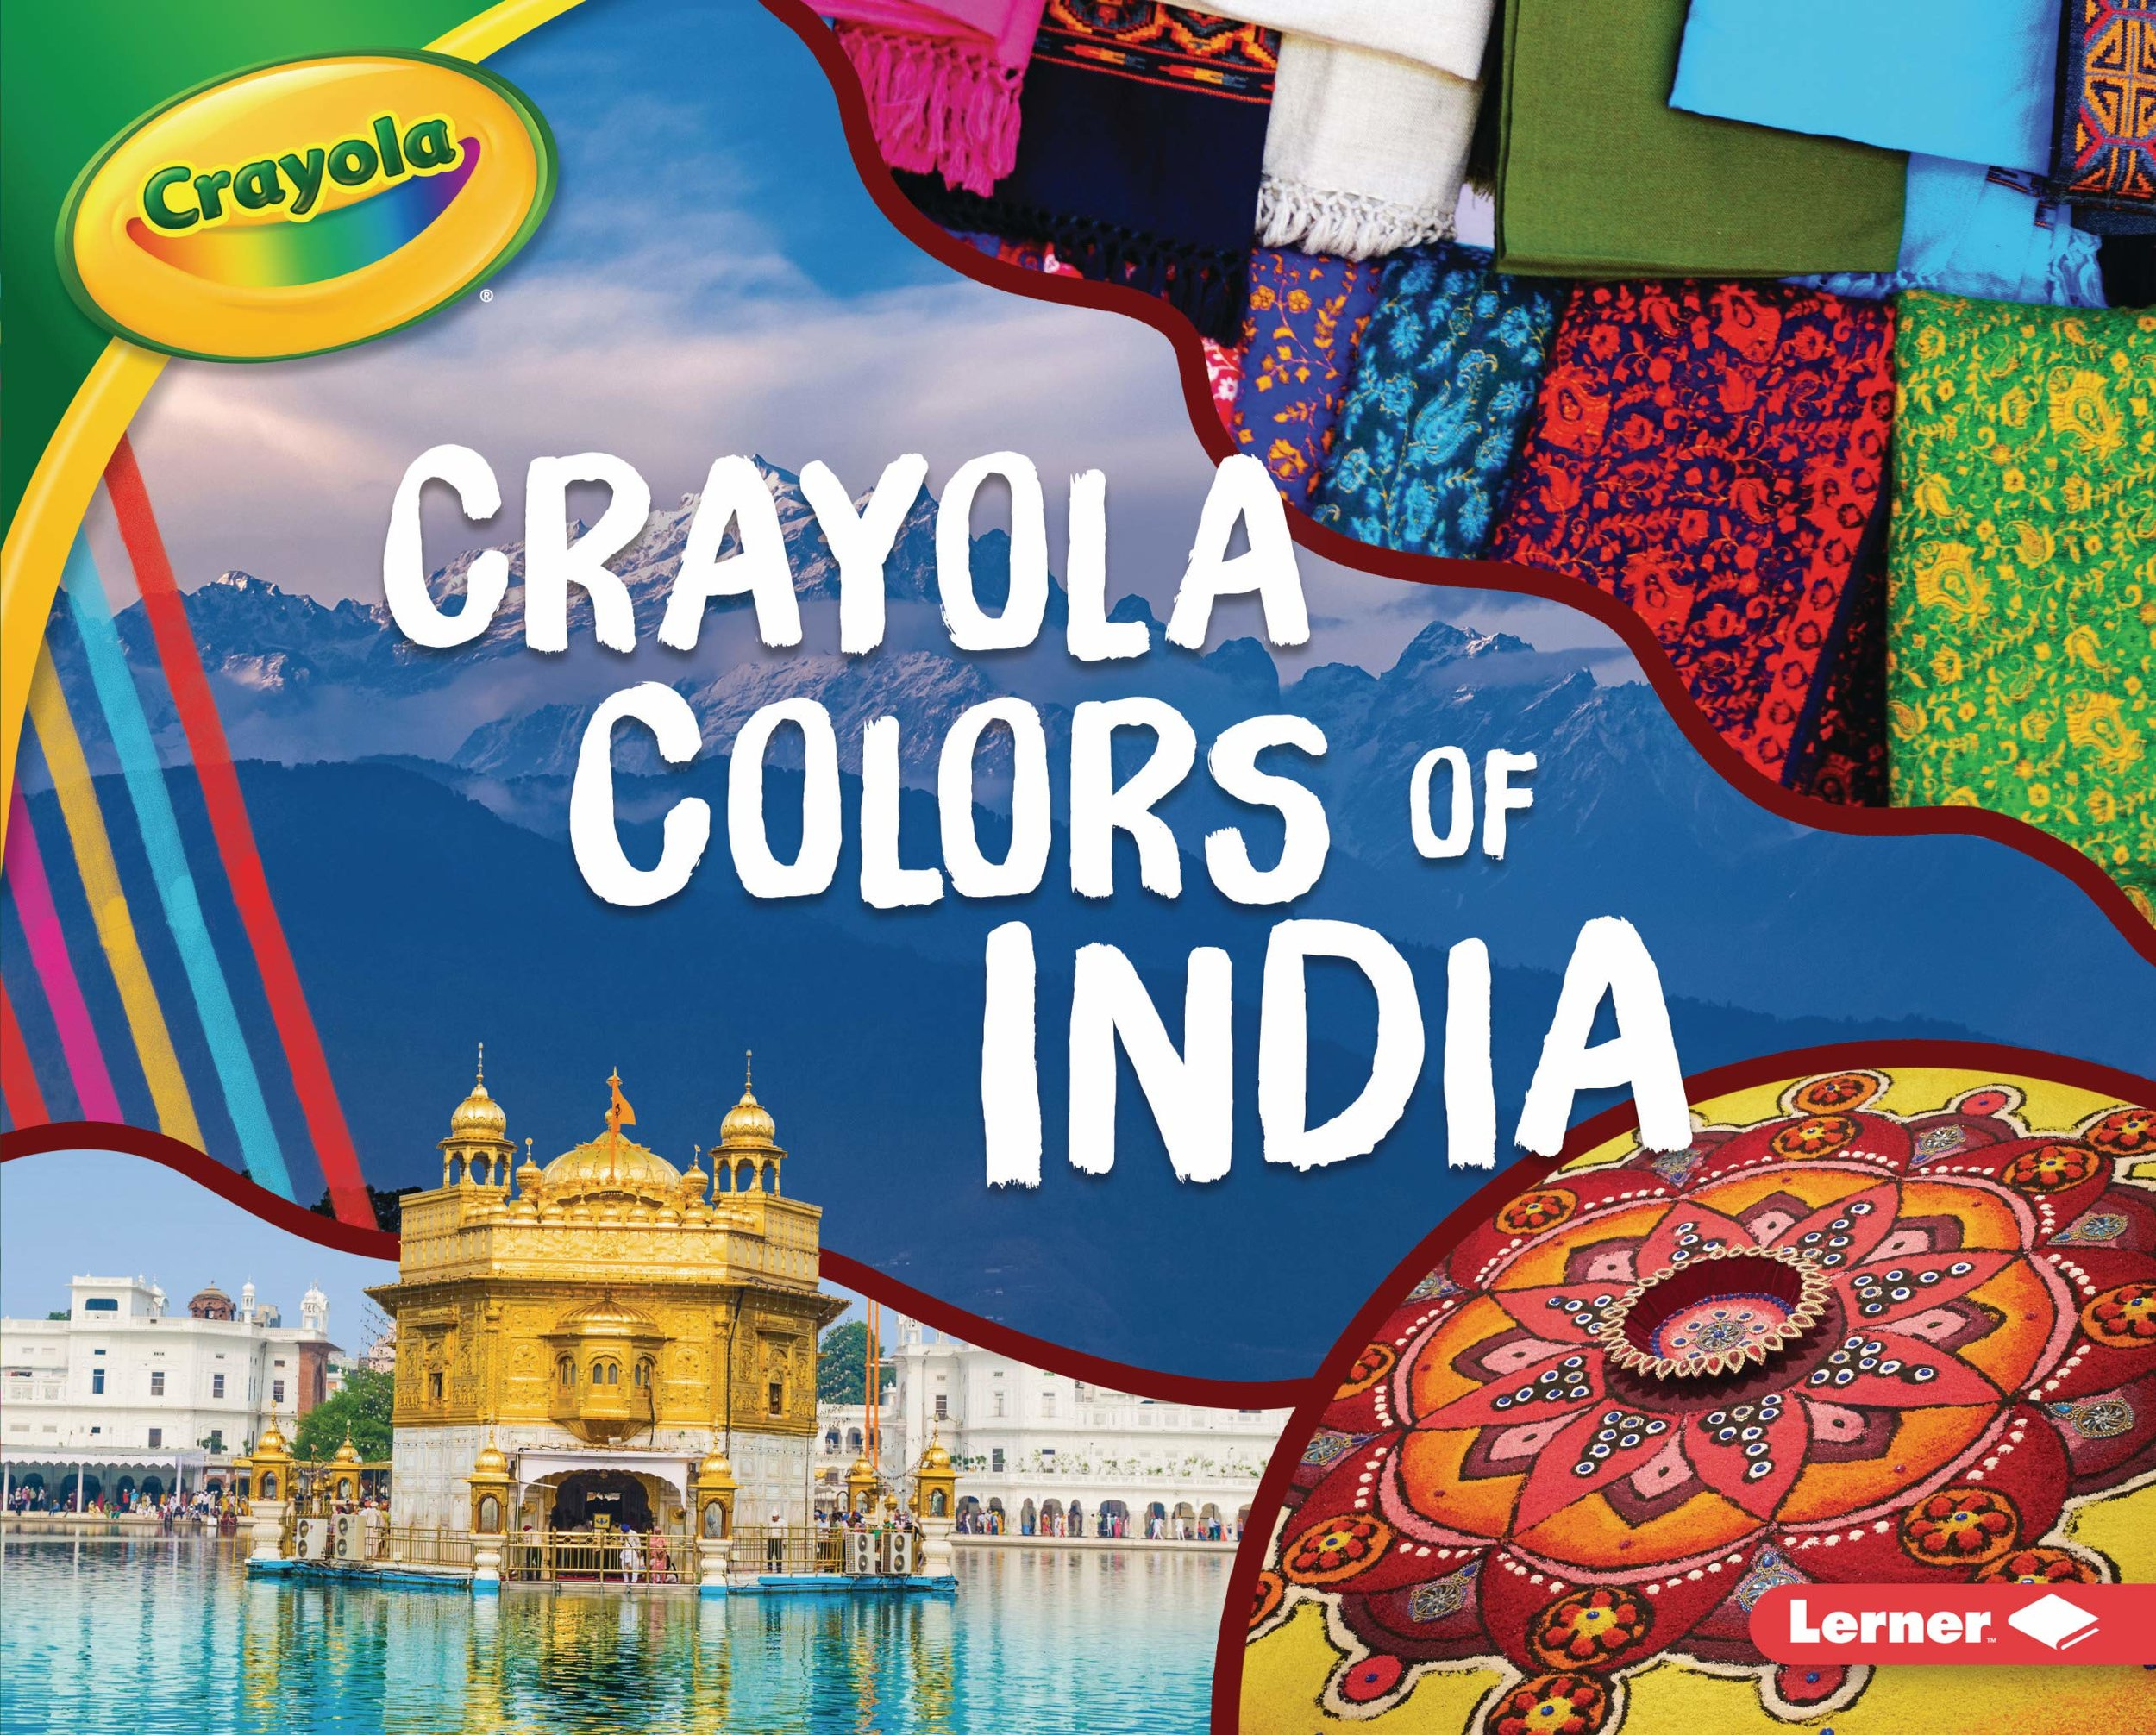 Crayola Colors of India.jpg